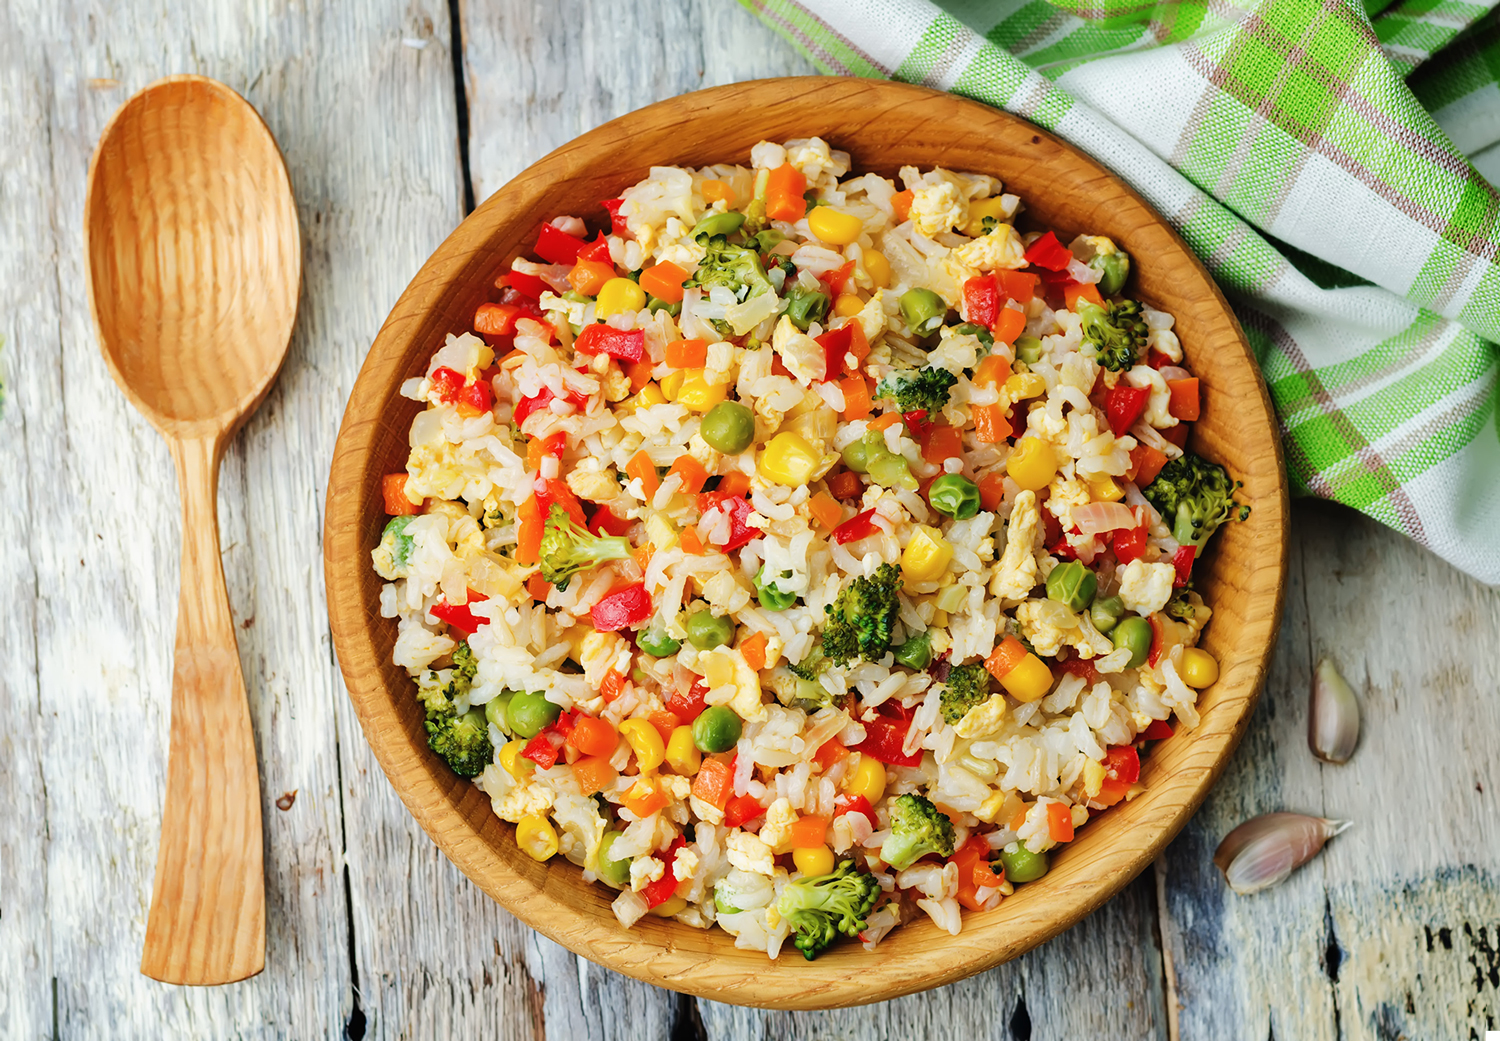 A wooden bowl full of fried rice containing peas, broccoli, corn and peppers.